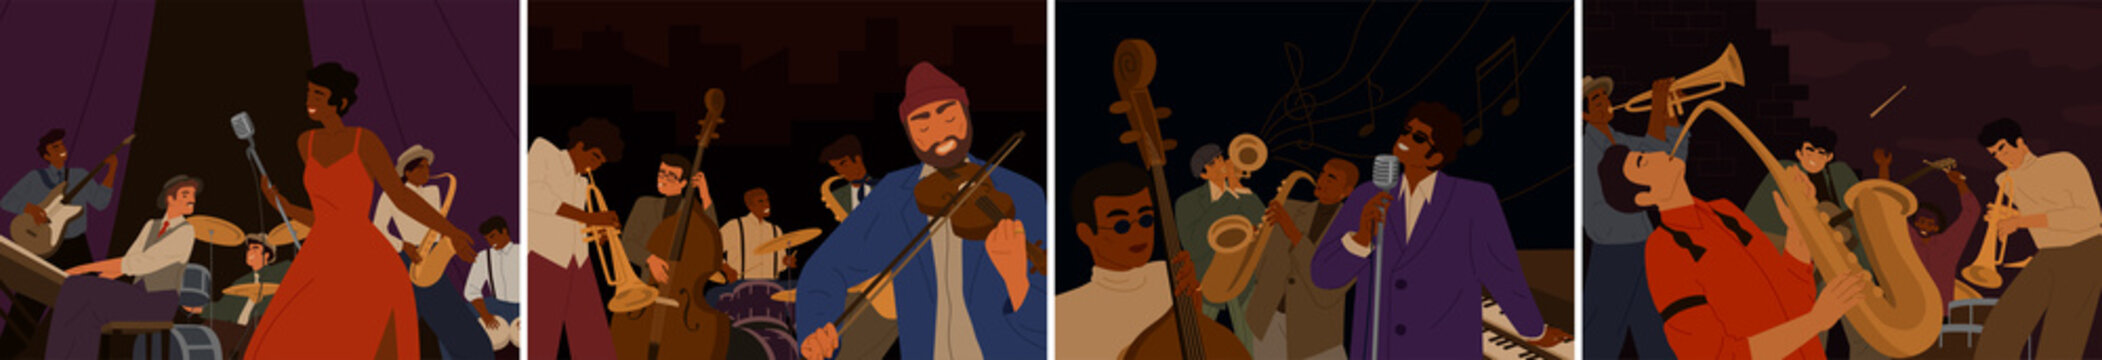 Set of cartoon diverse musicians playing on musical instruments and singing vector flat illustration. Collection artists of jazz band performing on stage or street. Colorful play in orchestra